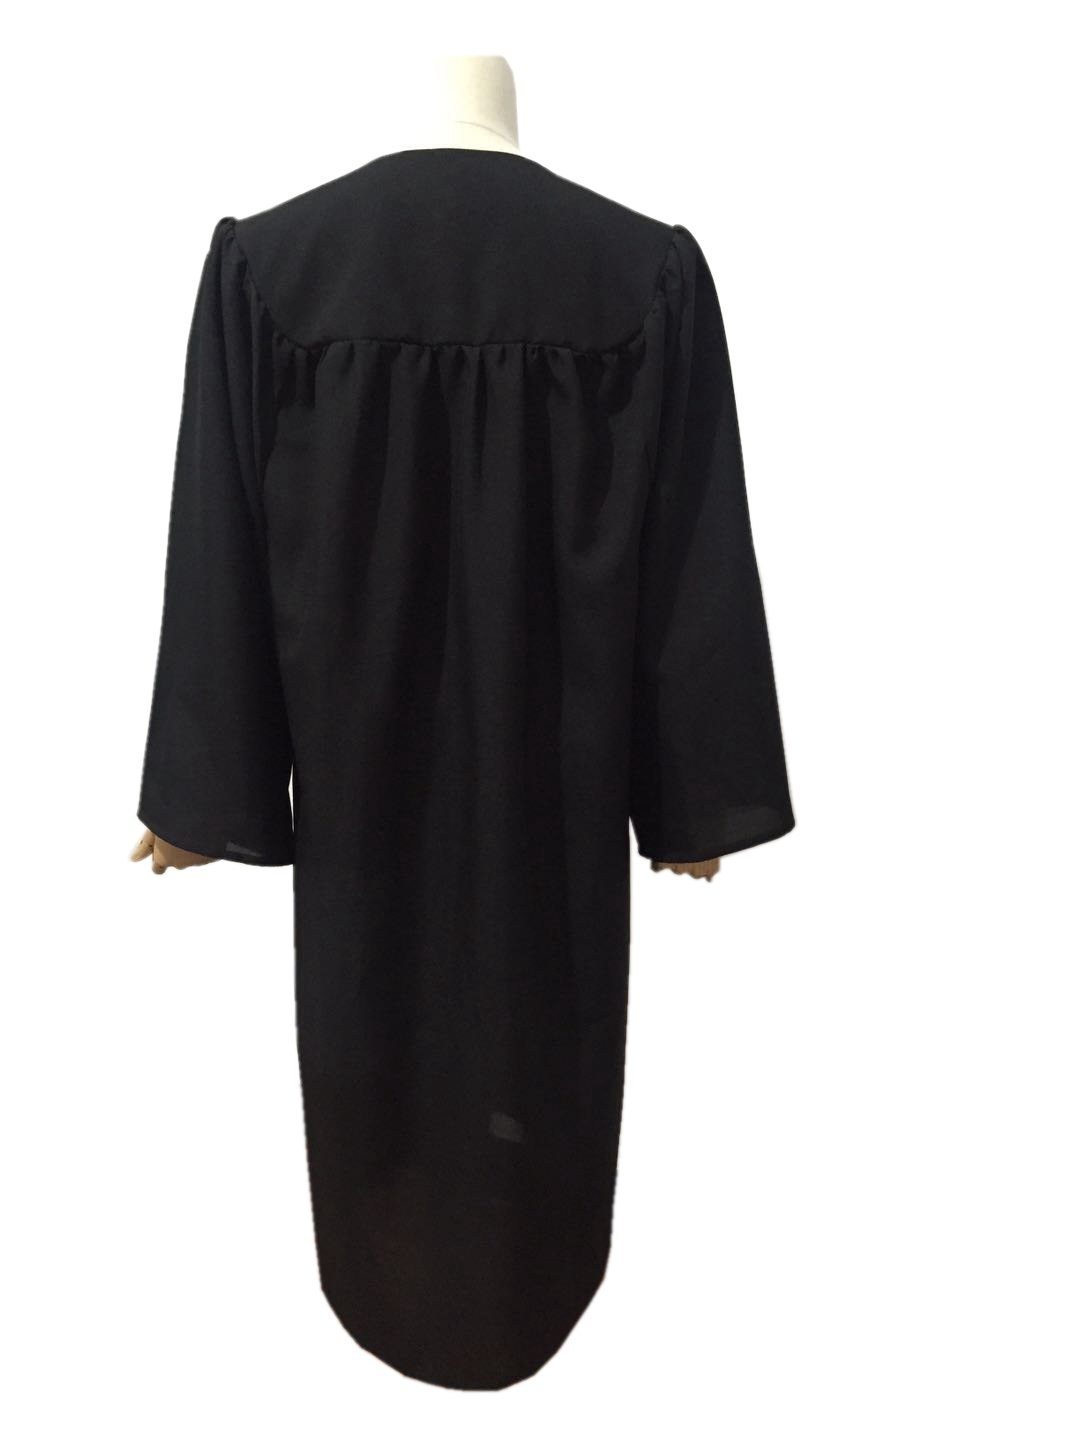 Leishungao Adult Black Choir Robe Matte Finish for Choir Clergy ReligiousWearing Height 5'9''-5'11''FF by Leishungao (Image #5)